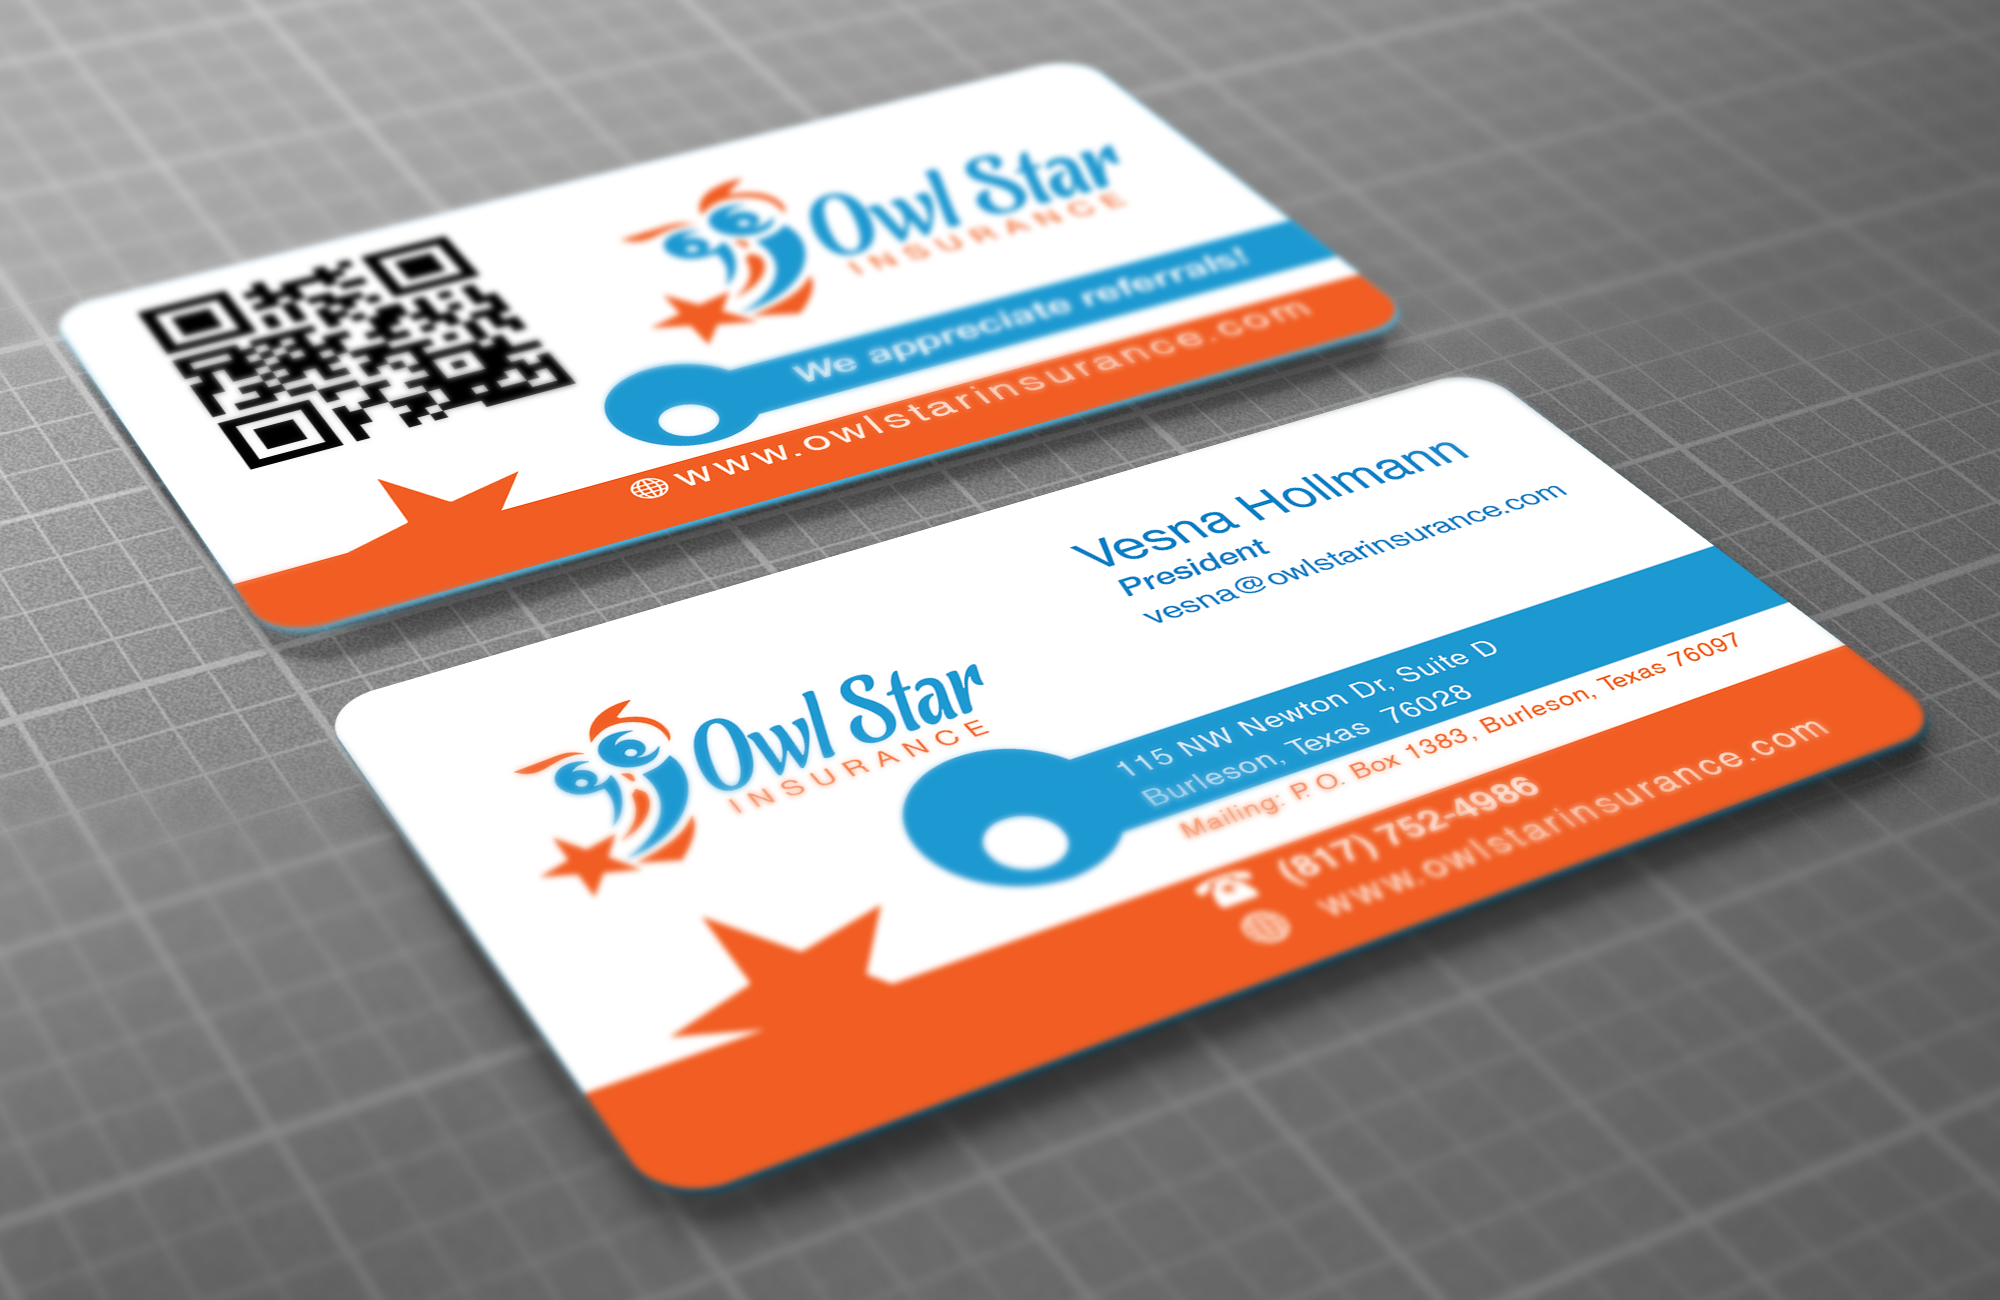 I had the pleasure of designing the logo, website, and these cute business cards for this new insurance agency - http://www.owlstarinsurance.com